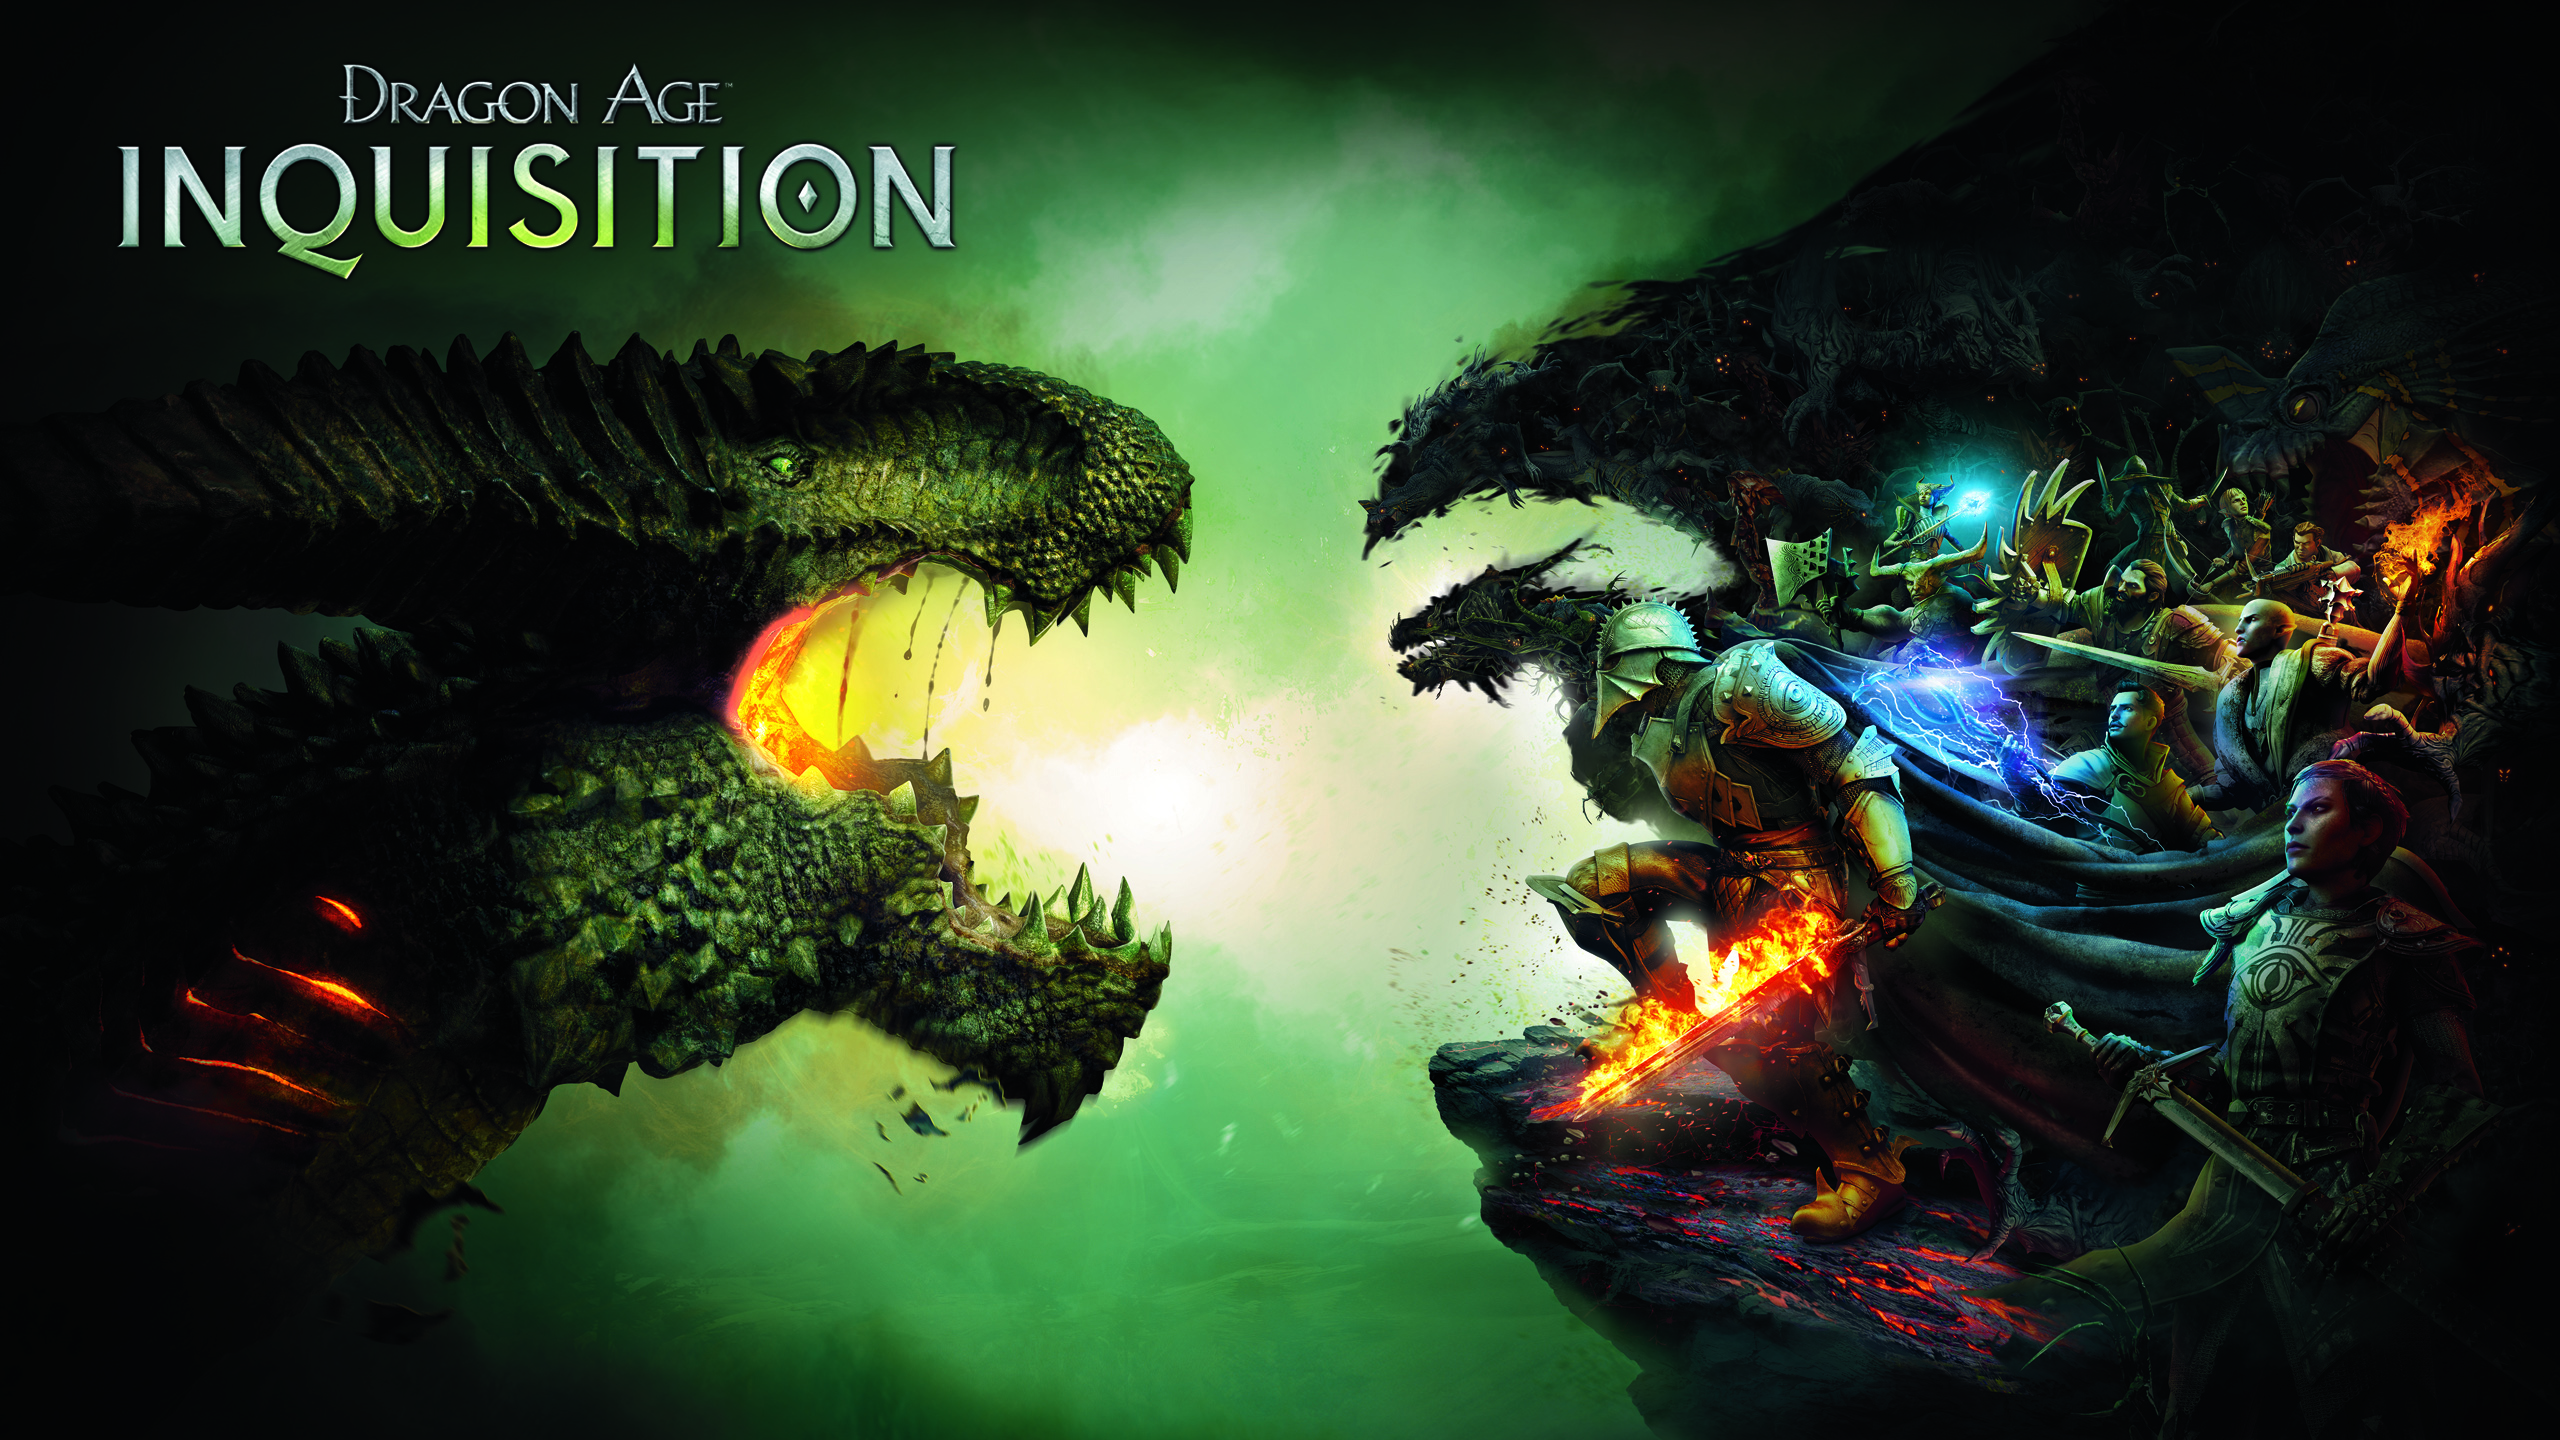 Inquisition 4k Wallpapers For Your Desktop Or Mobile Screen Free